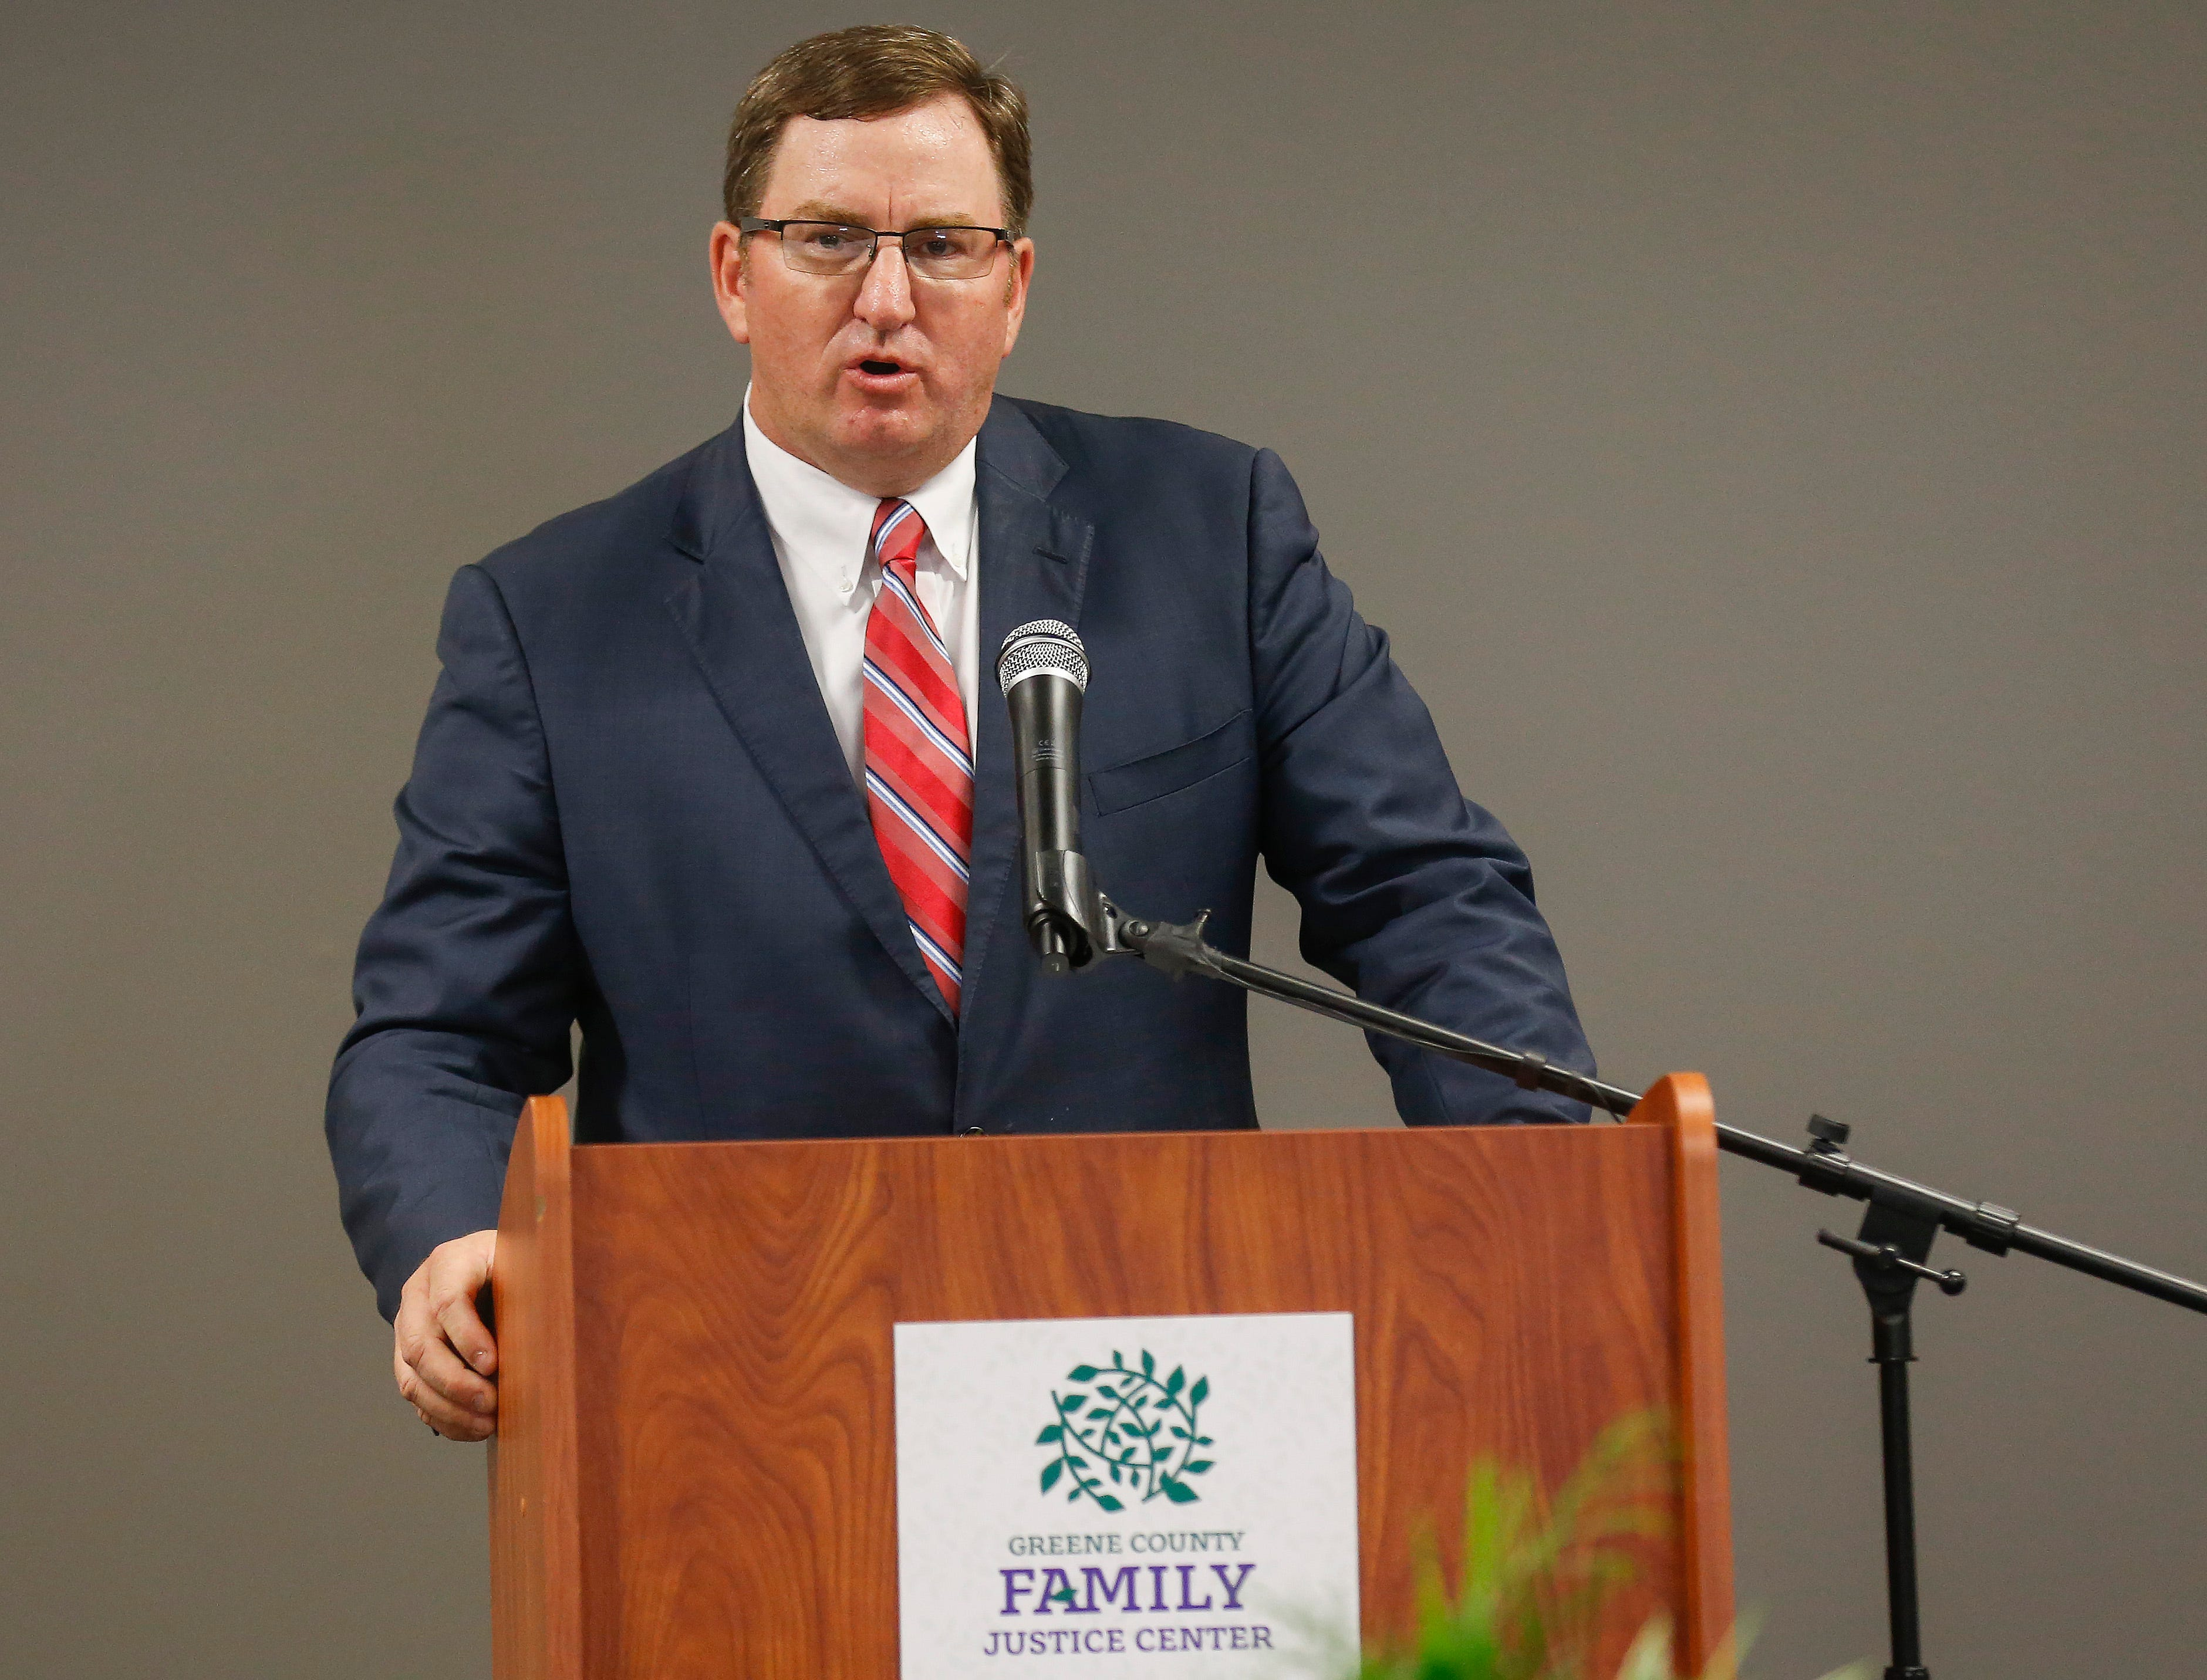 Seven months ago, Greene County Prosecutor Dan Patterson spoke at the ribbon-cutting ceremony for the Greene County Family Justice Center. On Tuesday, he addressed the Springfield school board.